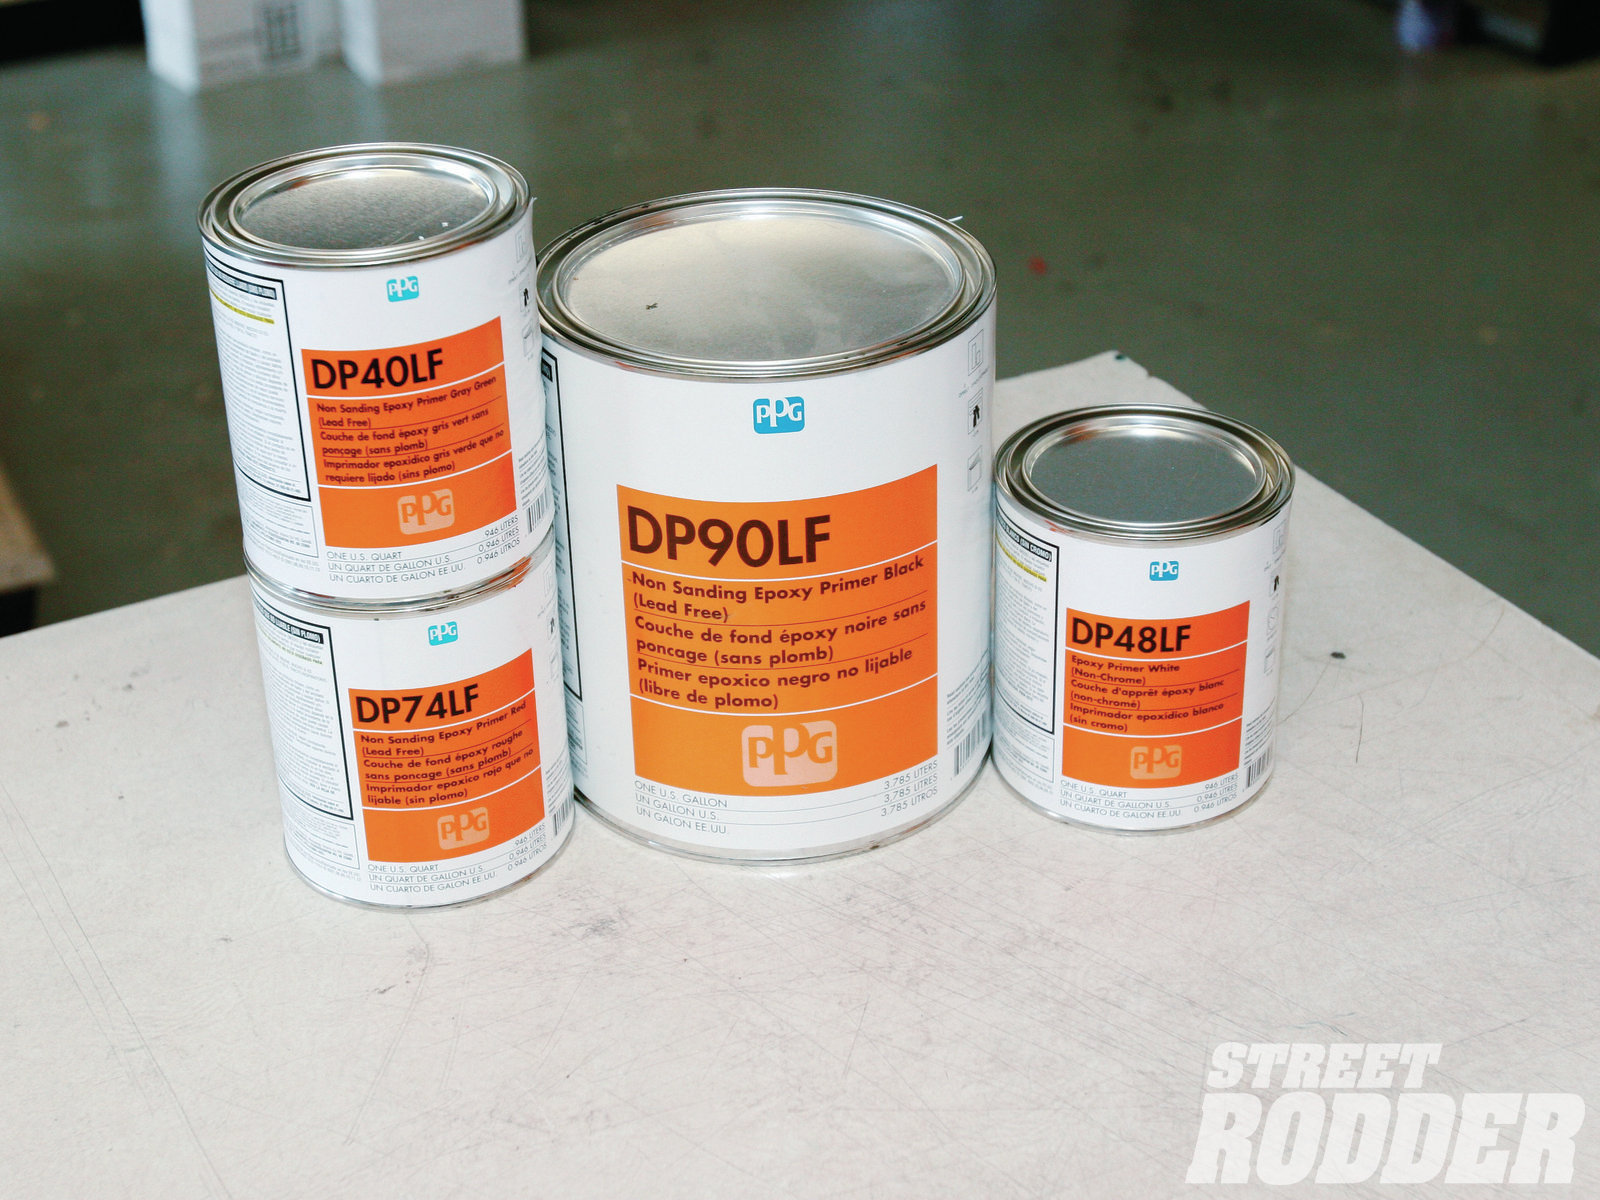 The DPLF epoxy primers are applied direct to prepared metal. They have excellent corrosion resistance and are unique as they can be used as a primer and a sealer. Available in a variety of colors, the LF stands for lead free.